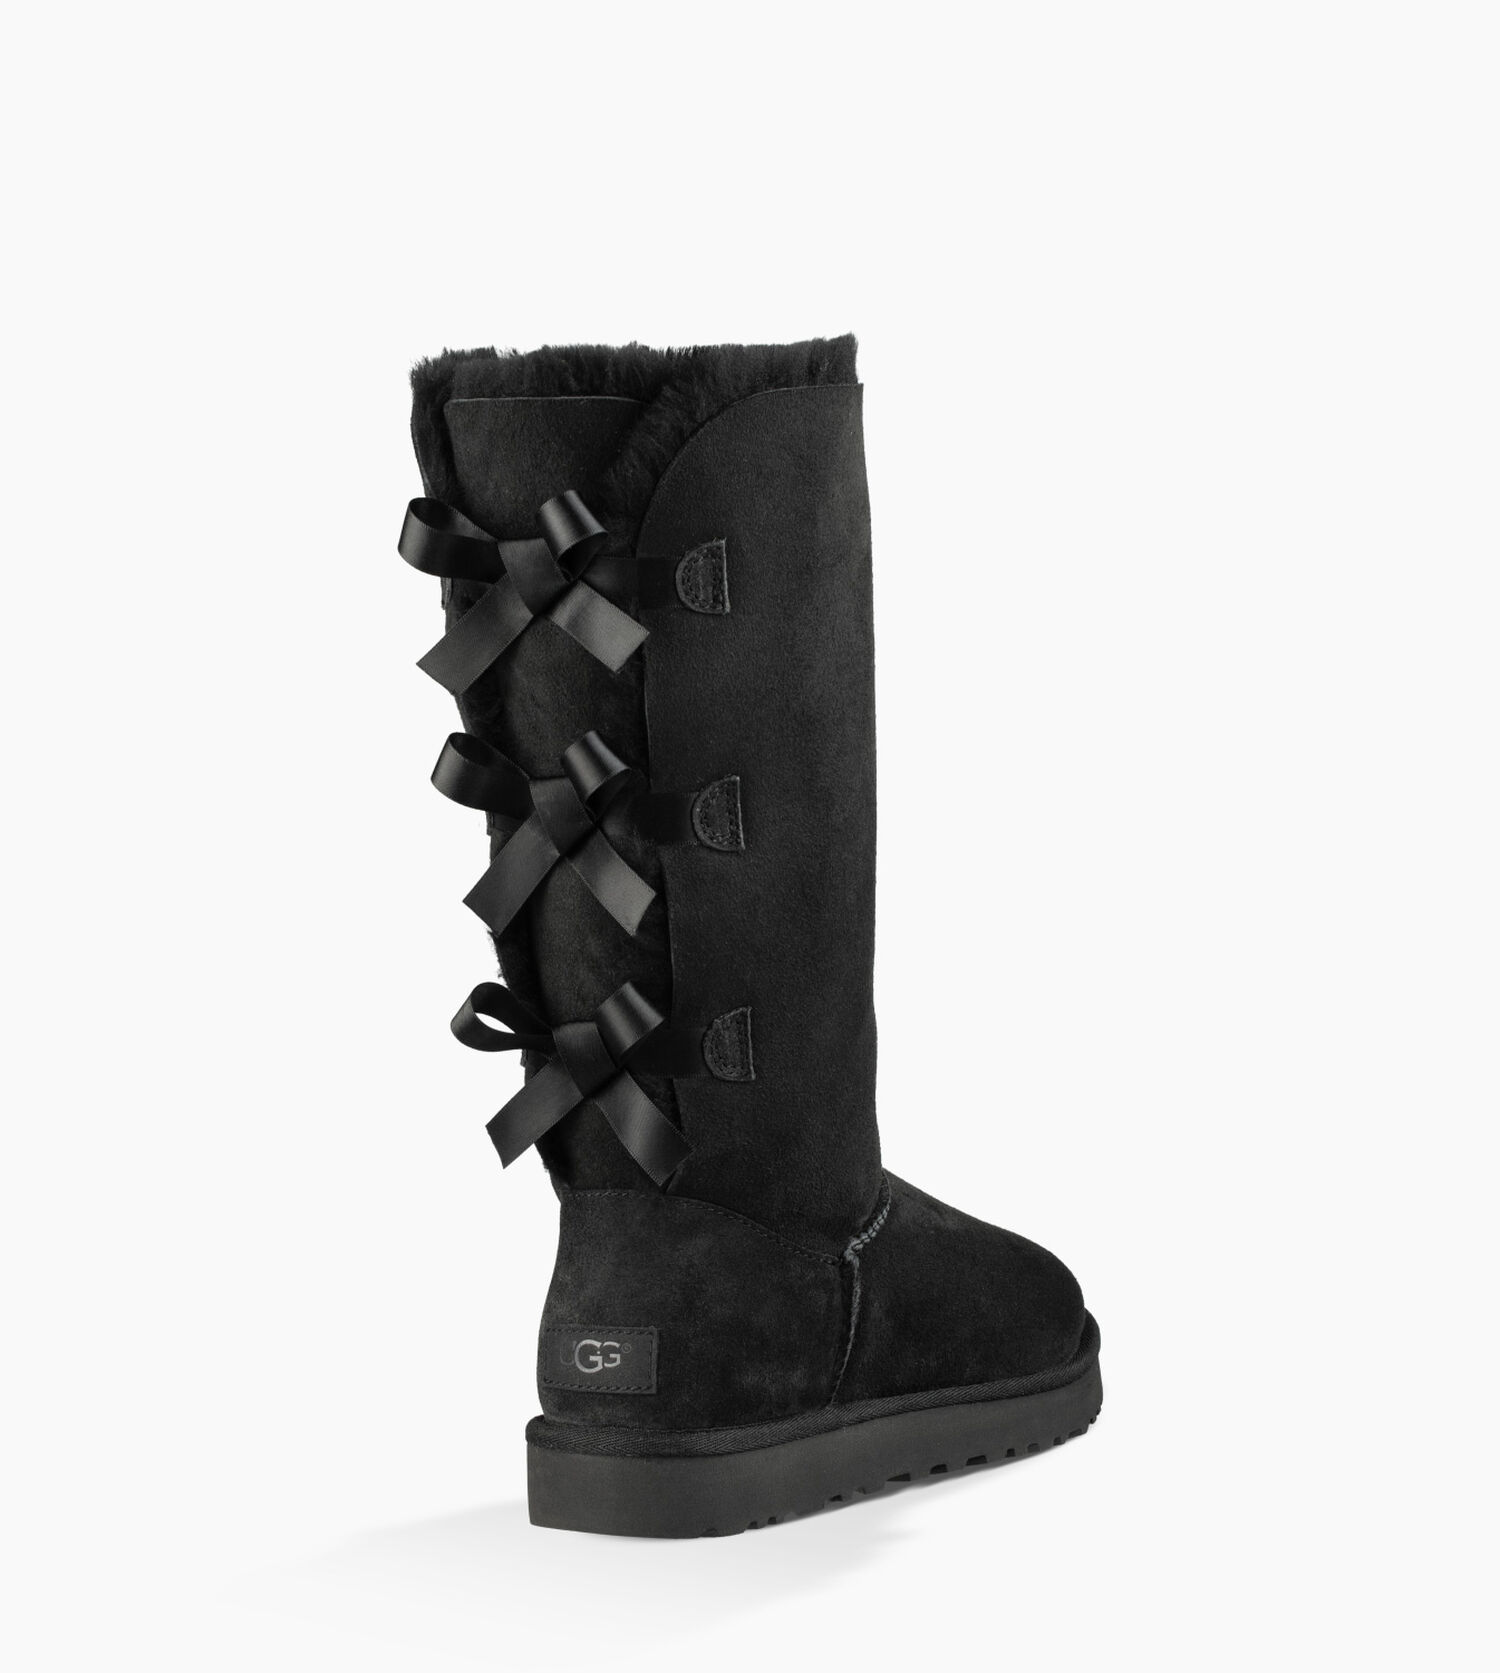 c890e7d3ac5f Zoom Bailey Bow Tall II Boot - Image 1 of 6